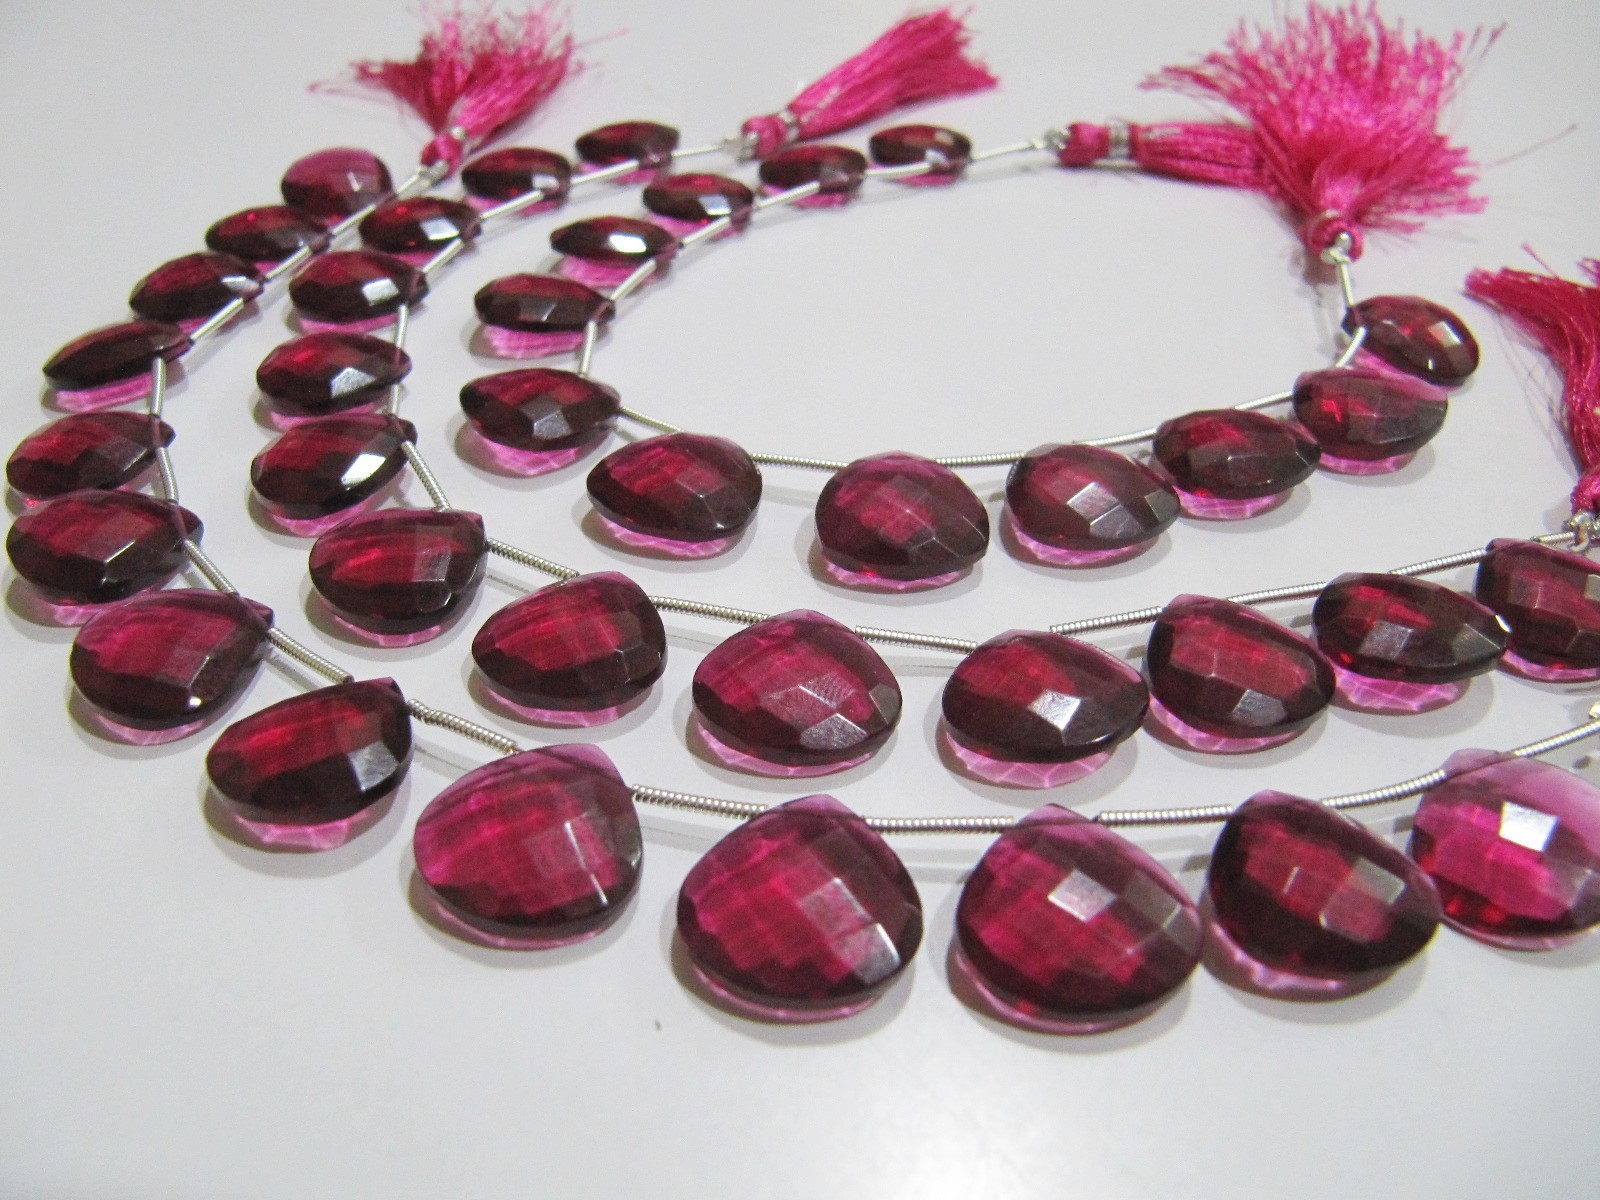 AAA Super Fine Quality Rubellite Pink Quartz Heart Shape